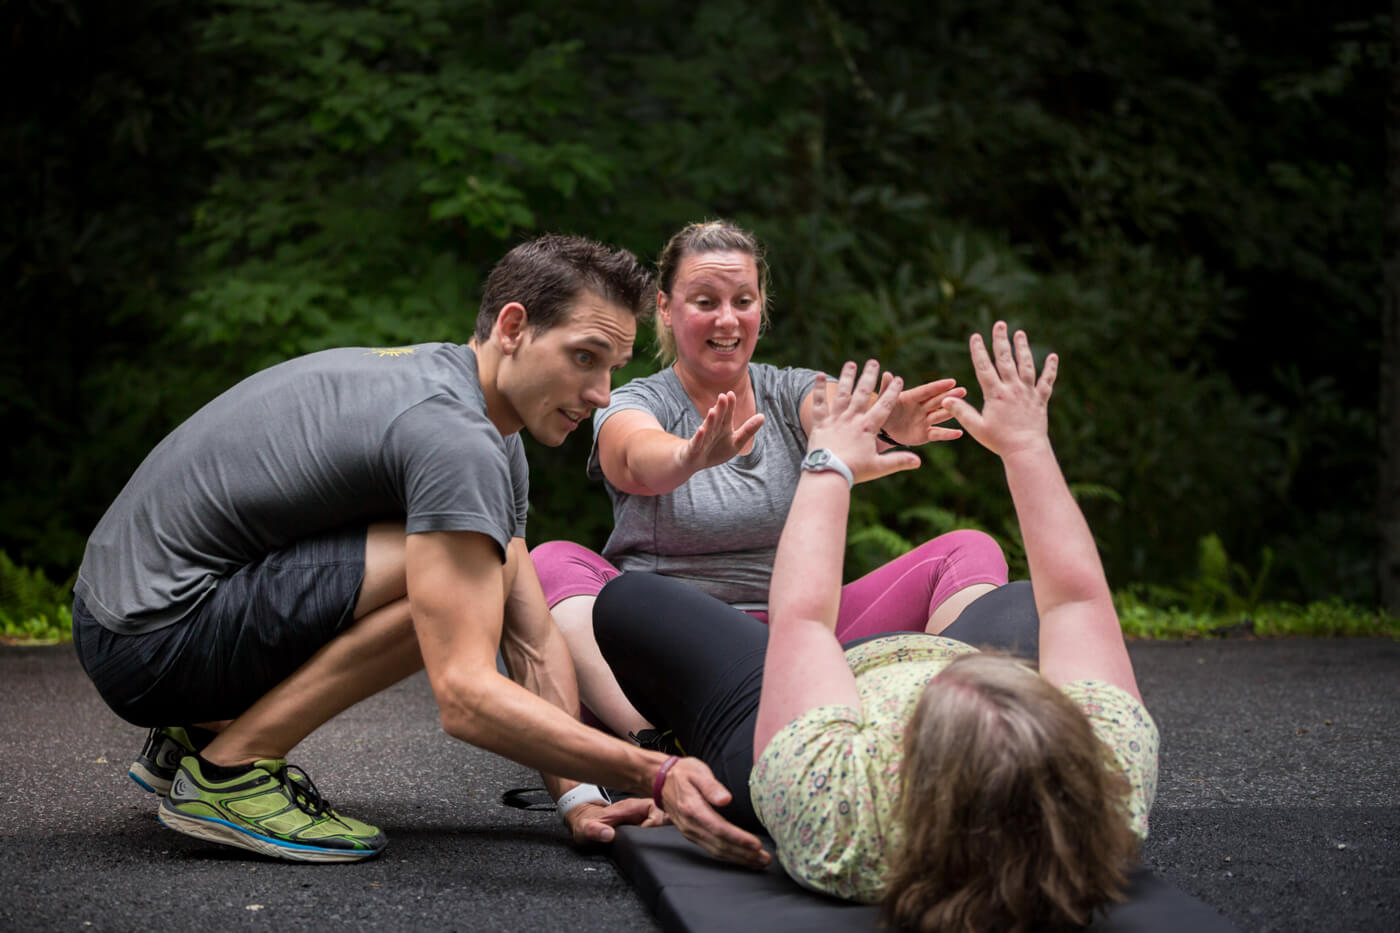 Questions to Help Plan Your New Workout Routine